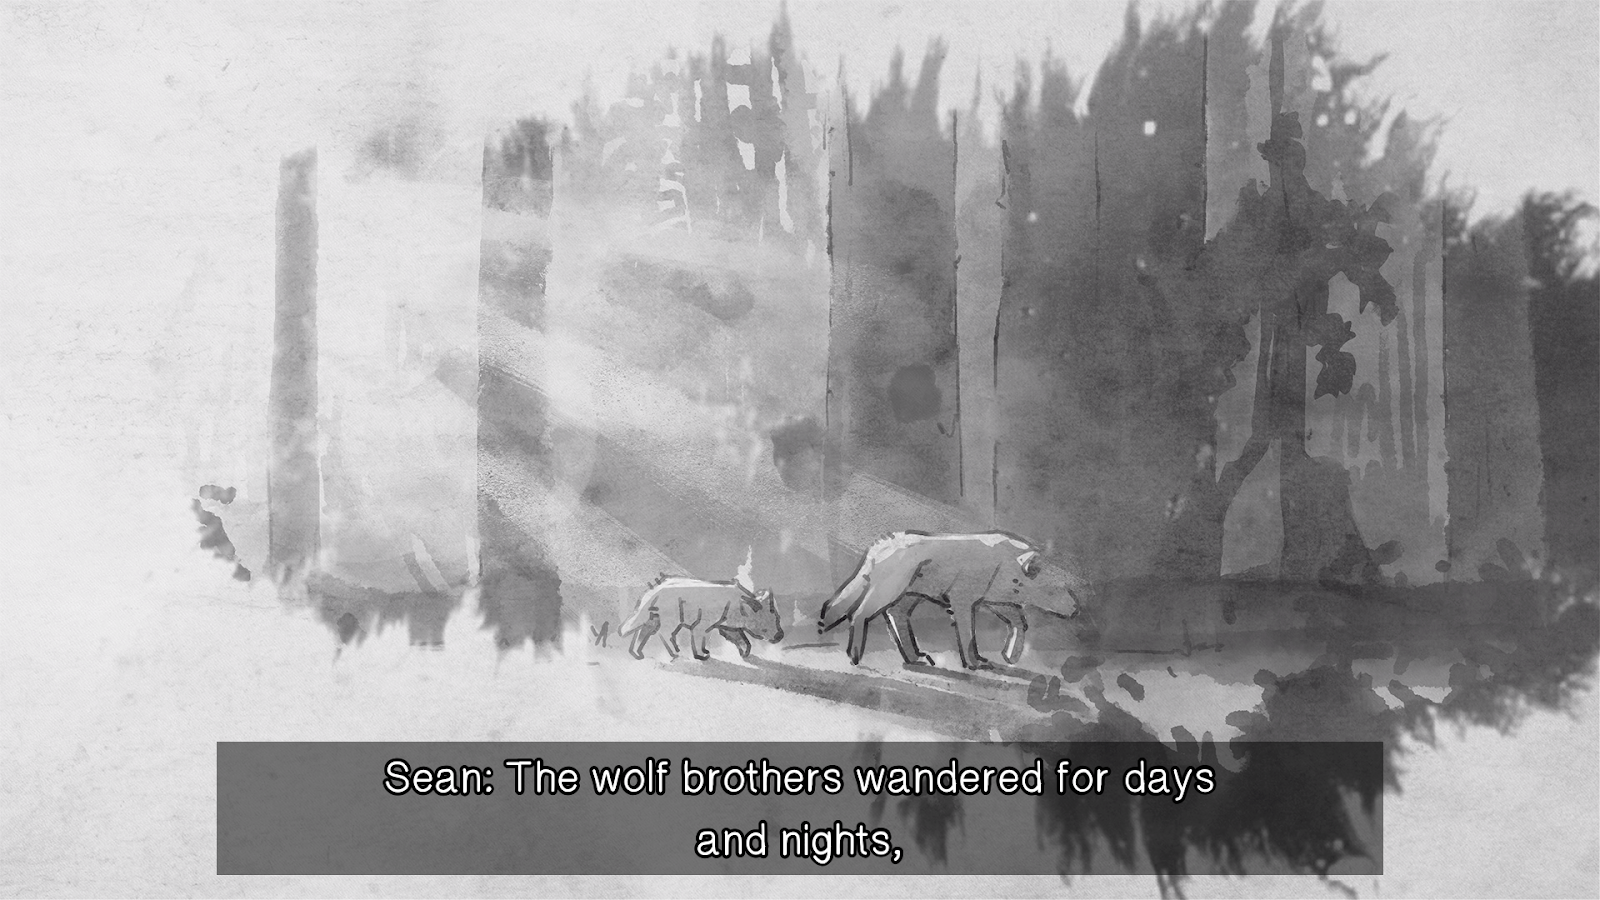 """A watercolour style image of two wolves, one bigger and one smaller, travelling through a forest. The subtitles read: """"Sean: The wolf brothers wandered for days and nights,"""""""